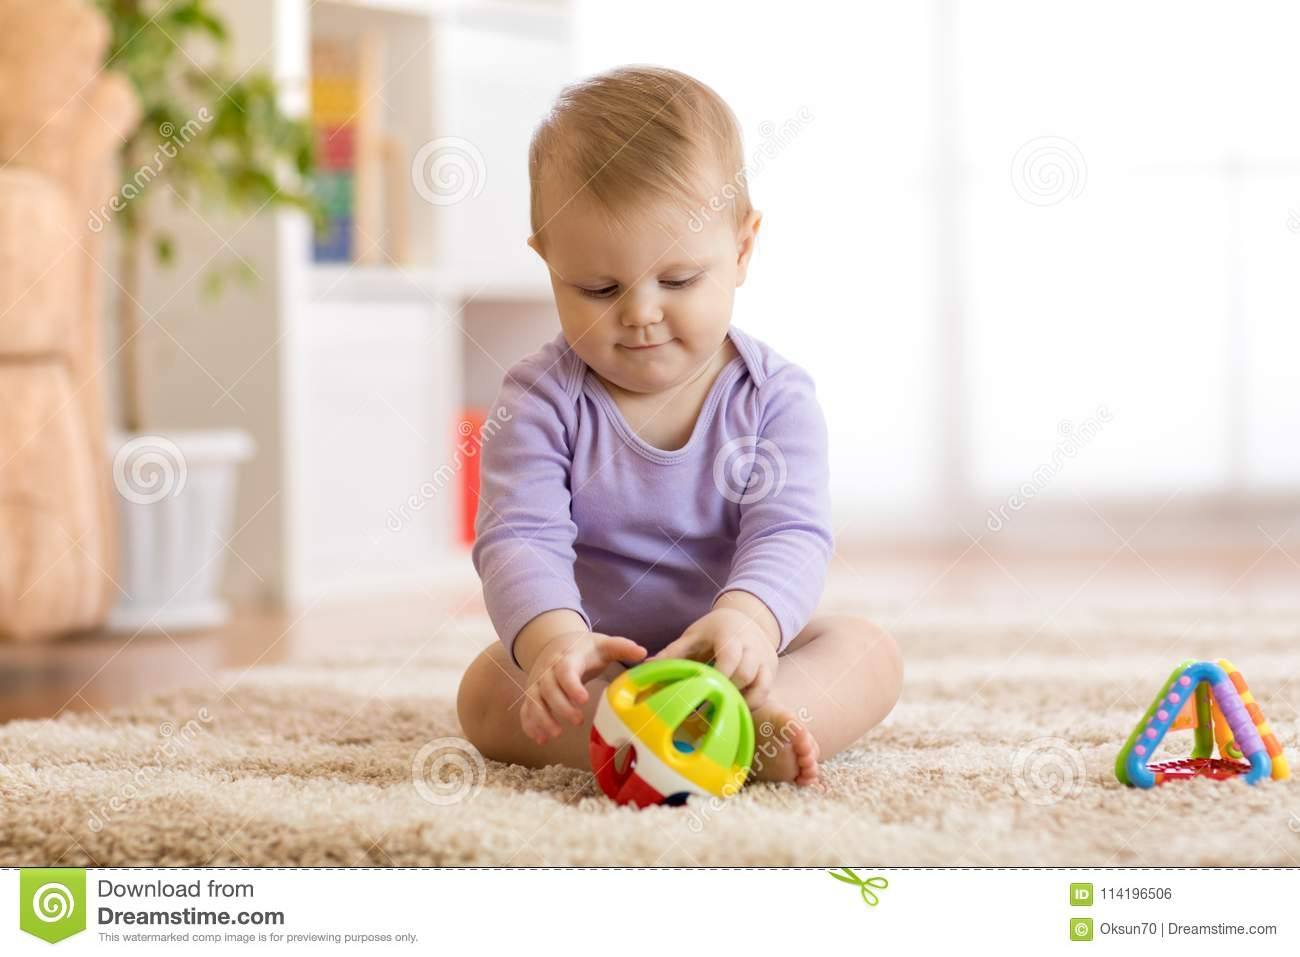 Cute baby playing with colorful toys sitting on carpet in white sunny bedroom. Child with educational toy. Early